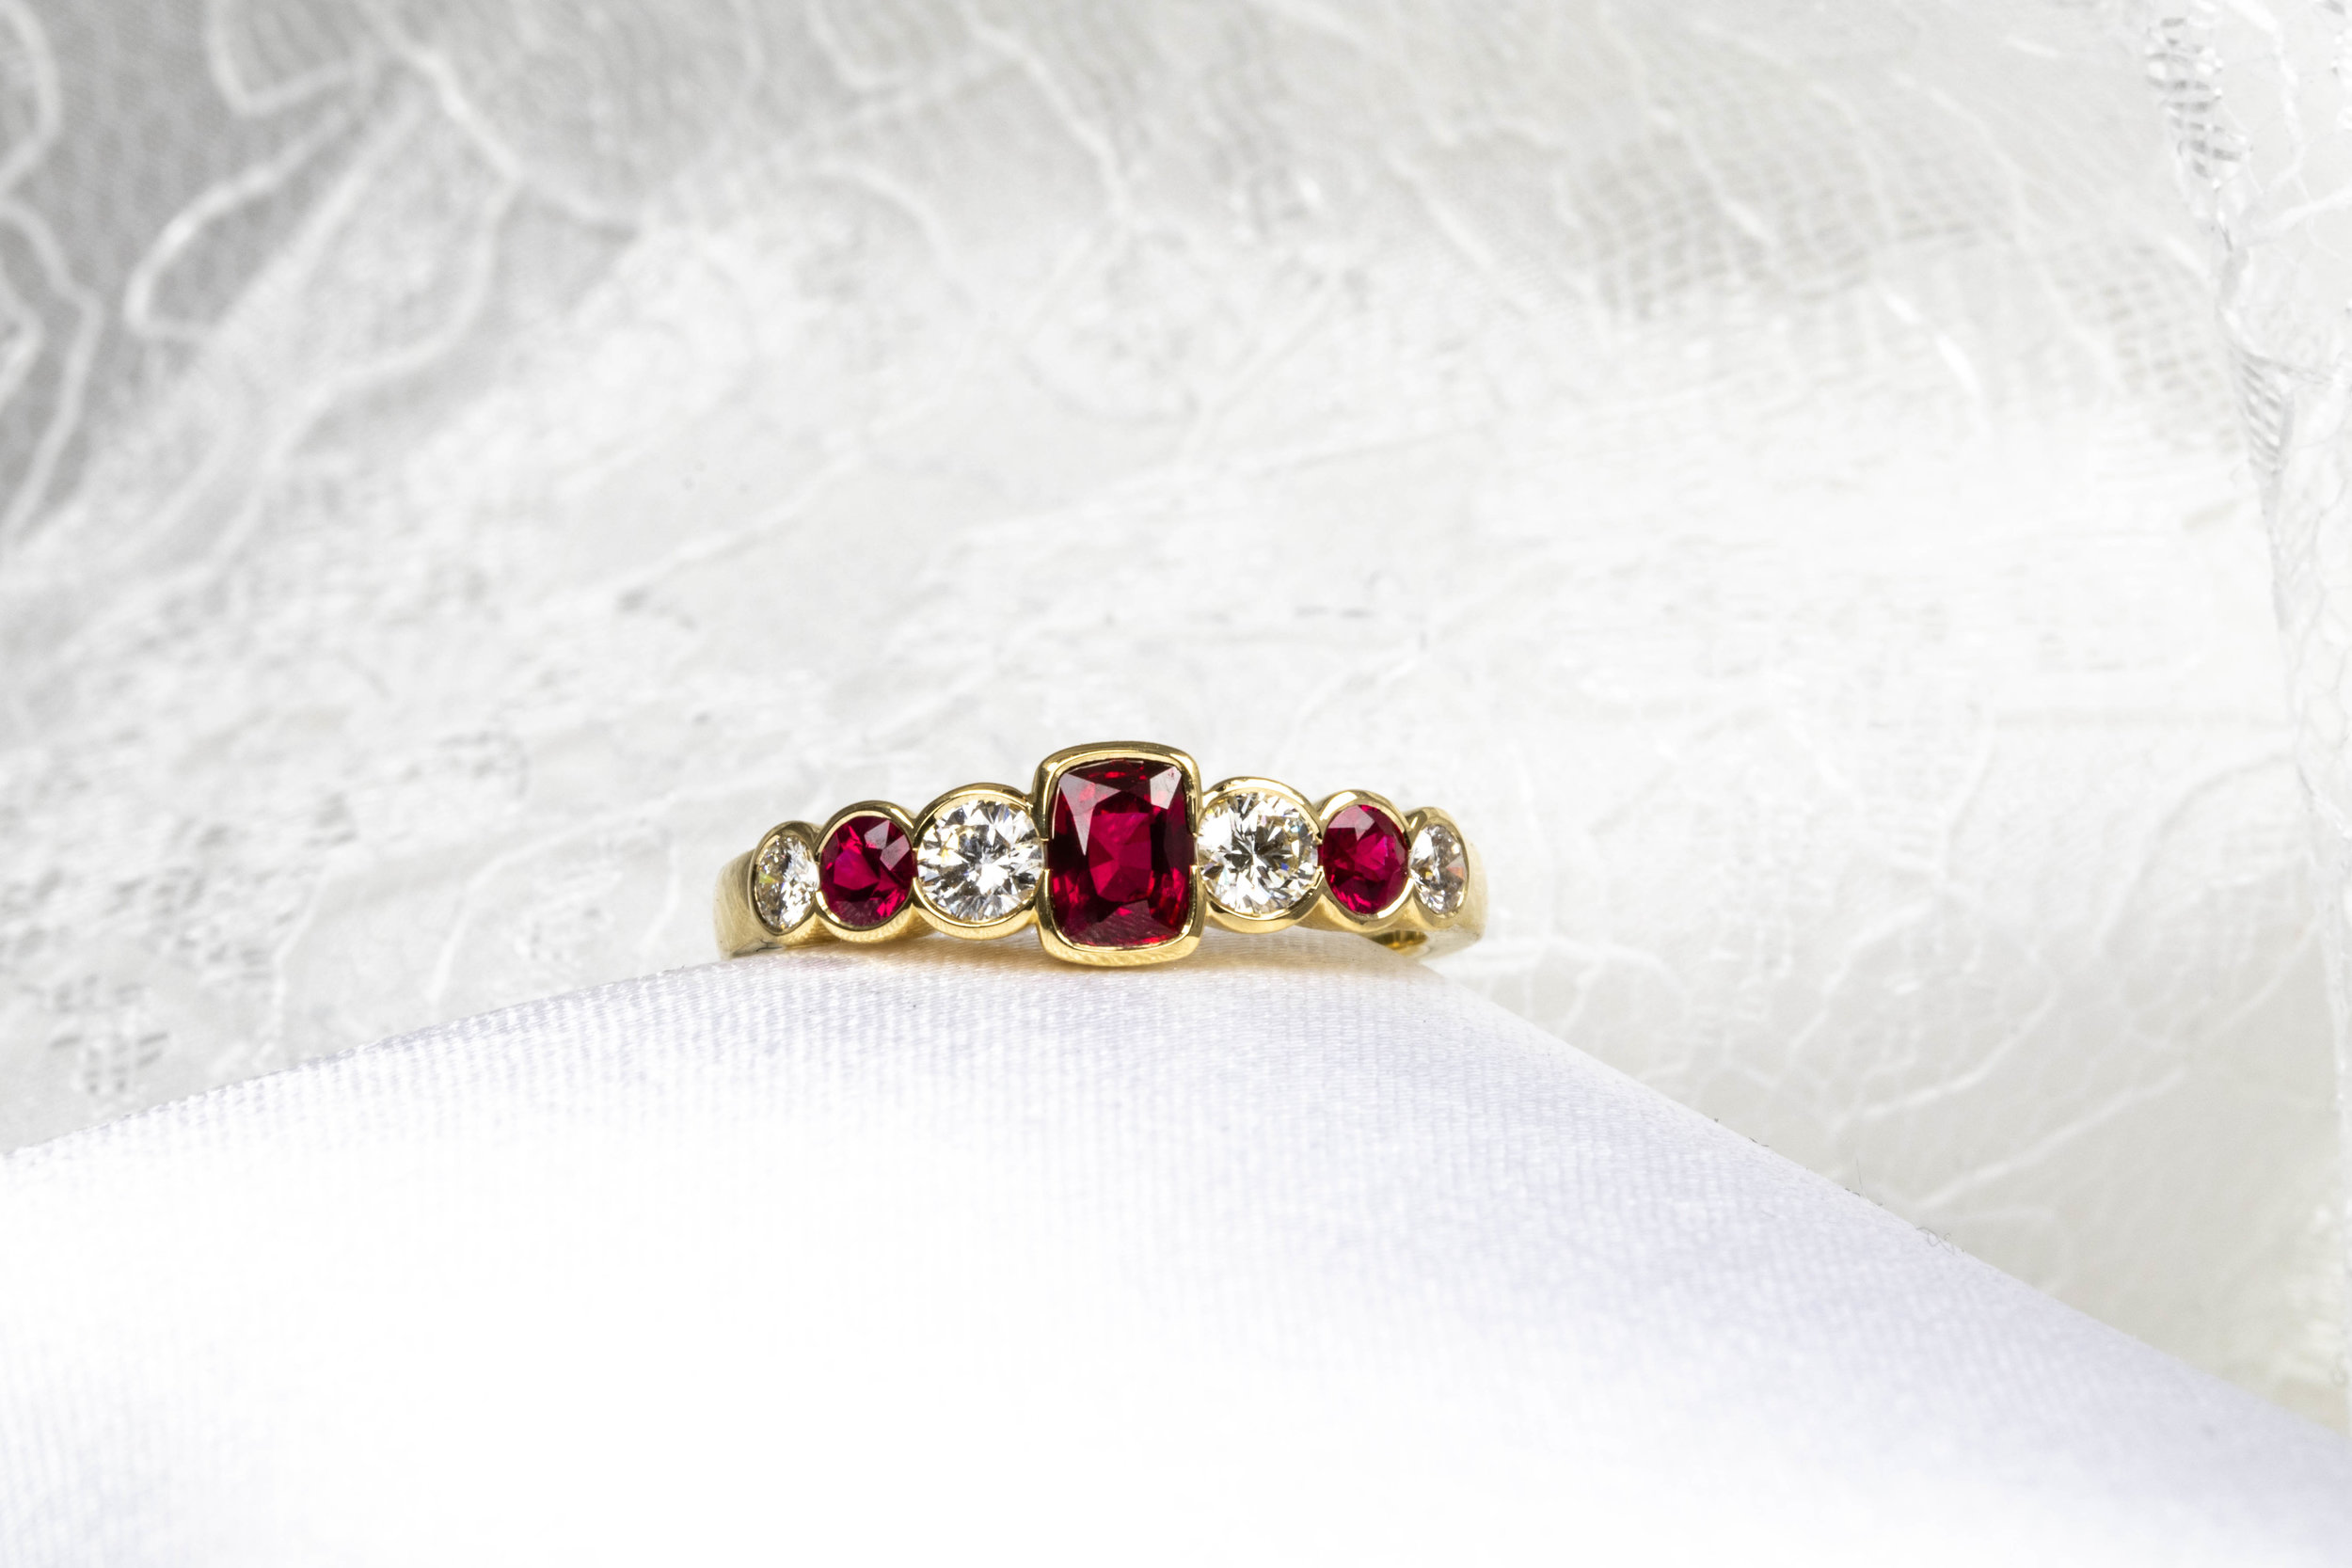 18ct yellow gold ruby and diamond rub-over set 7 stone ring. Made in Chichester, England.